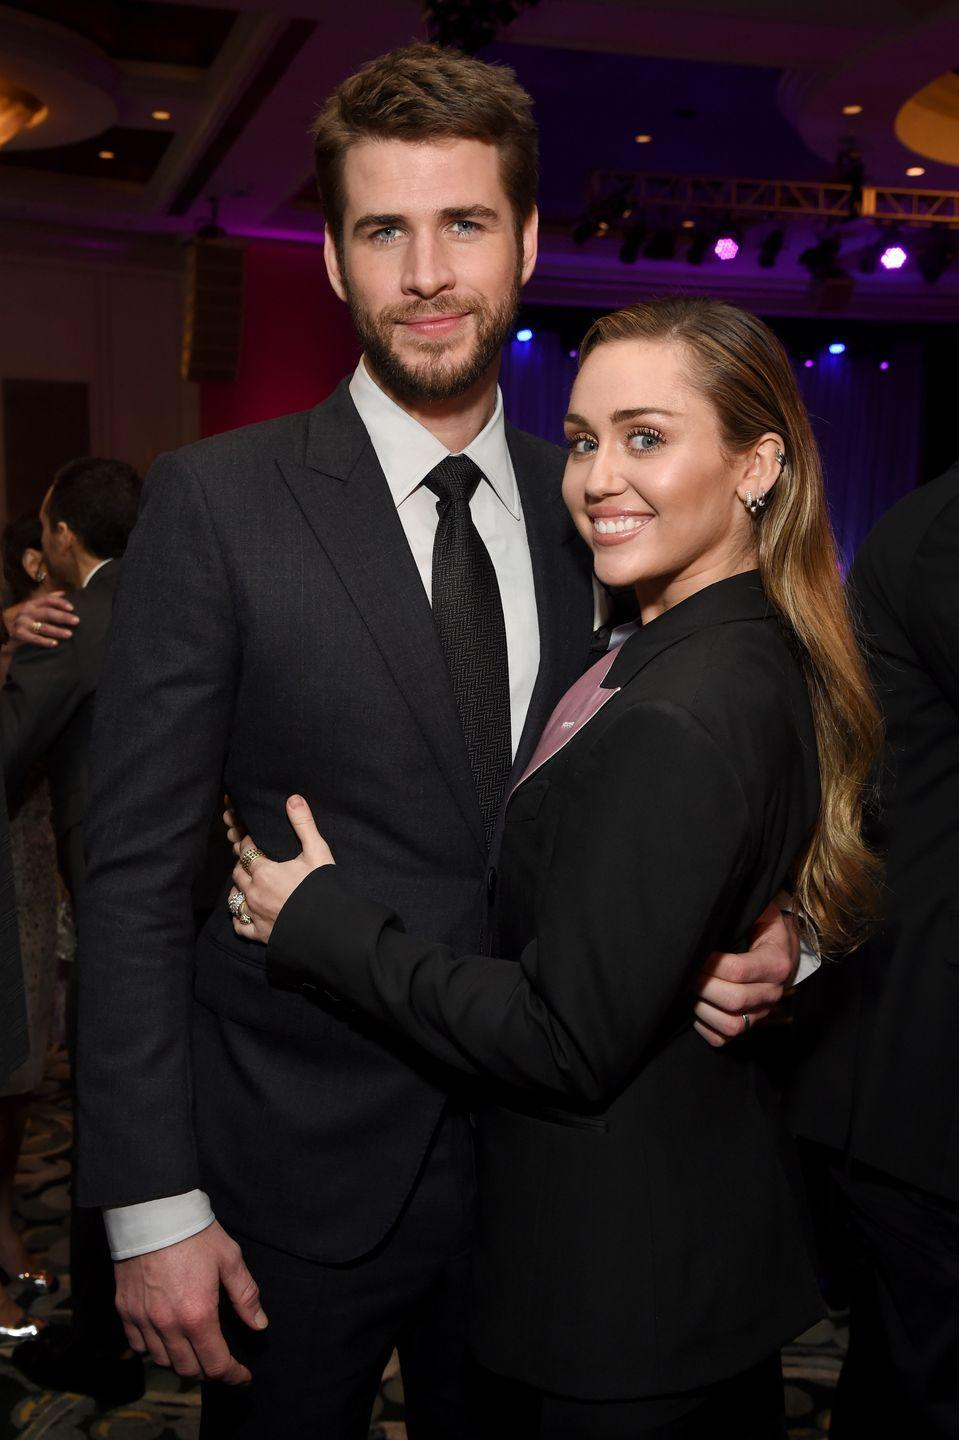 Miley Cyrus Explains Why She Initially Struggled Letting Go Of Liam Hemsworth And Their Relationship